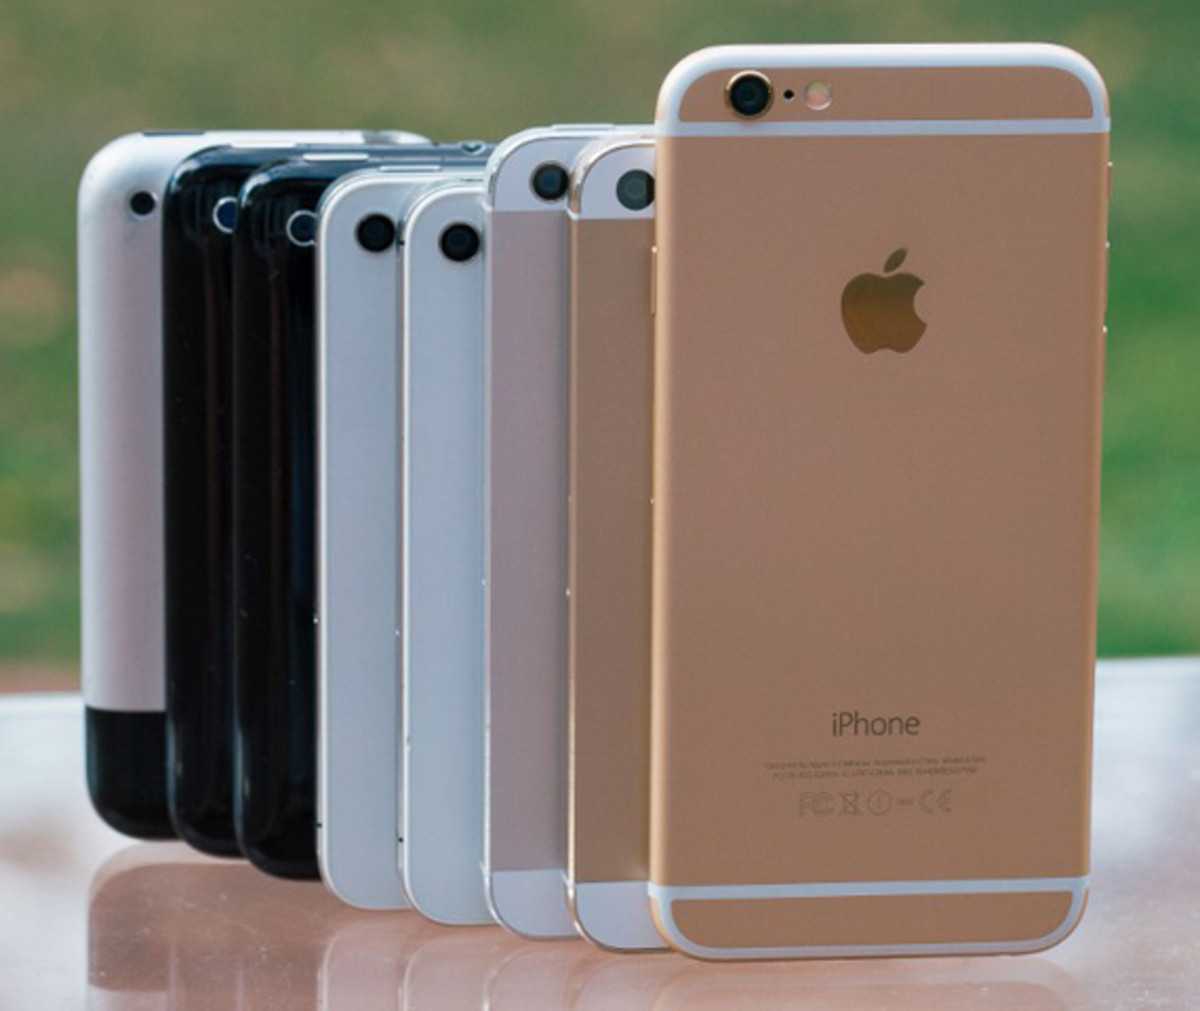 Side-By-Side Comparison of Apple iPhone Camera from The Original to the New iPhone 6